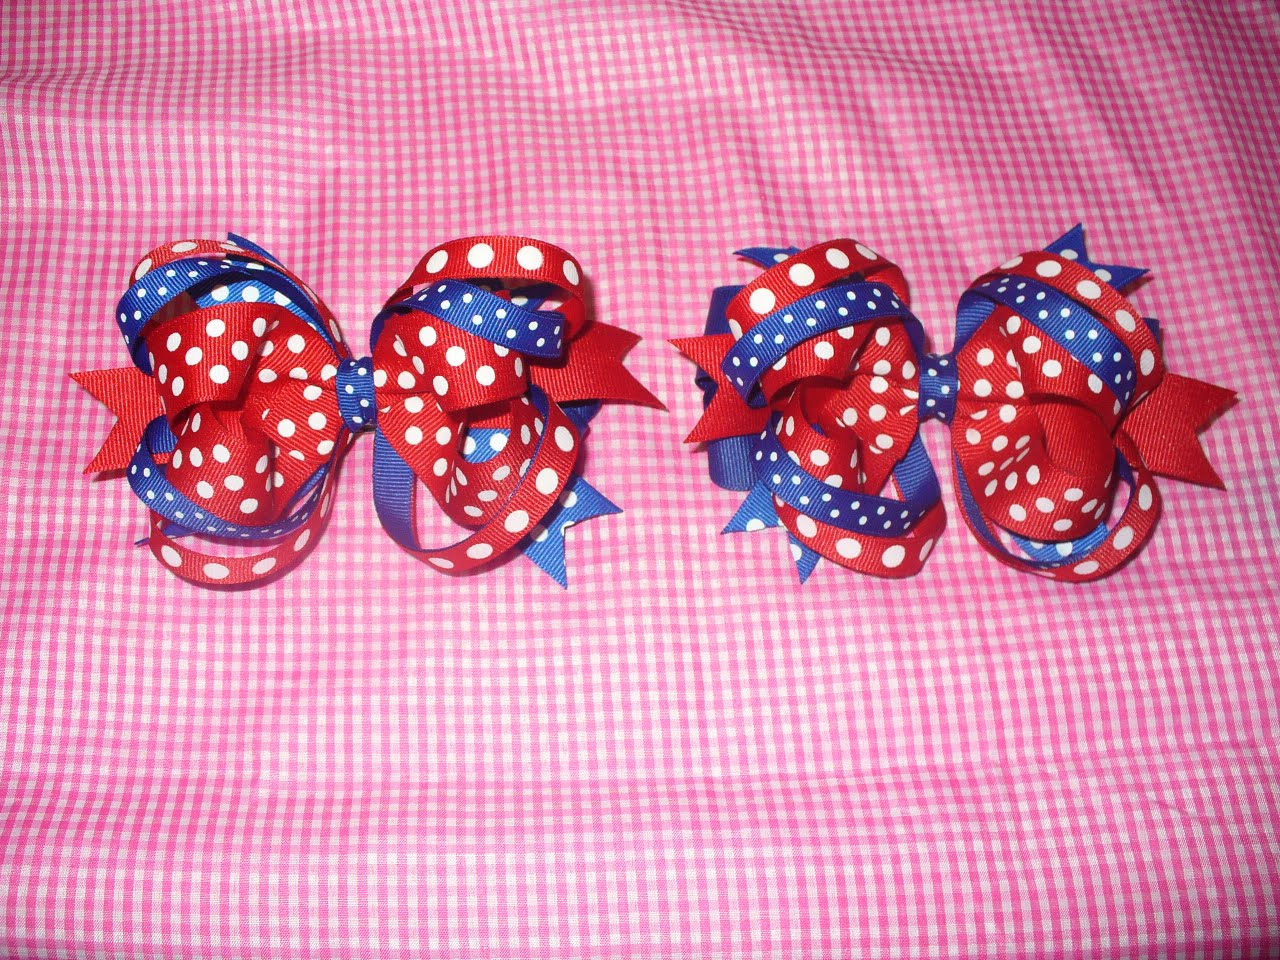 cemeshaiti.tk K likes. Order at our website- cemeshaiti.tk-Luxurious Hair Bows, Baby Headbands, Flower Hats, Baby & Girls Tutus for Your.